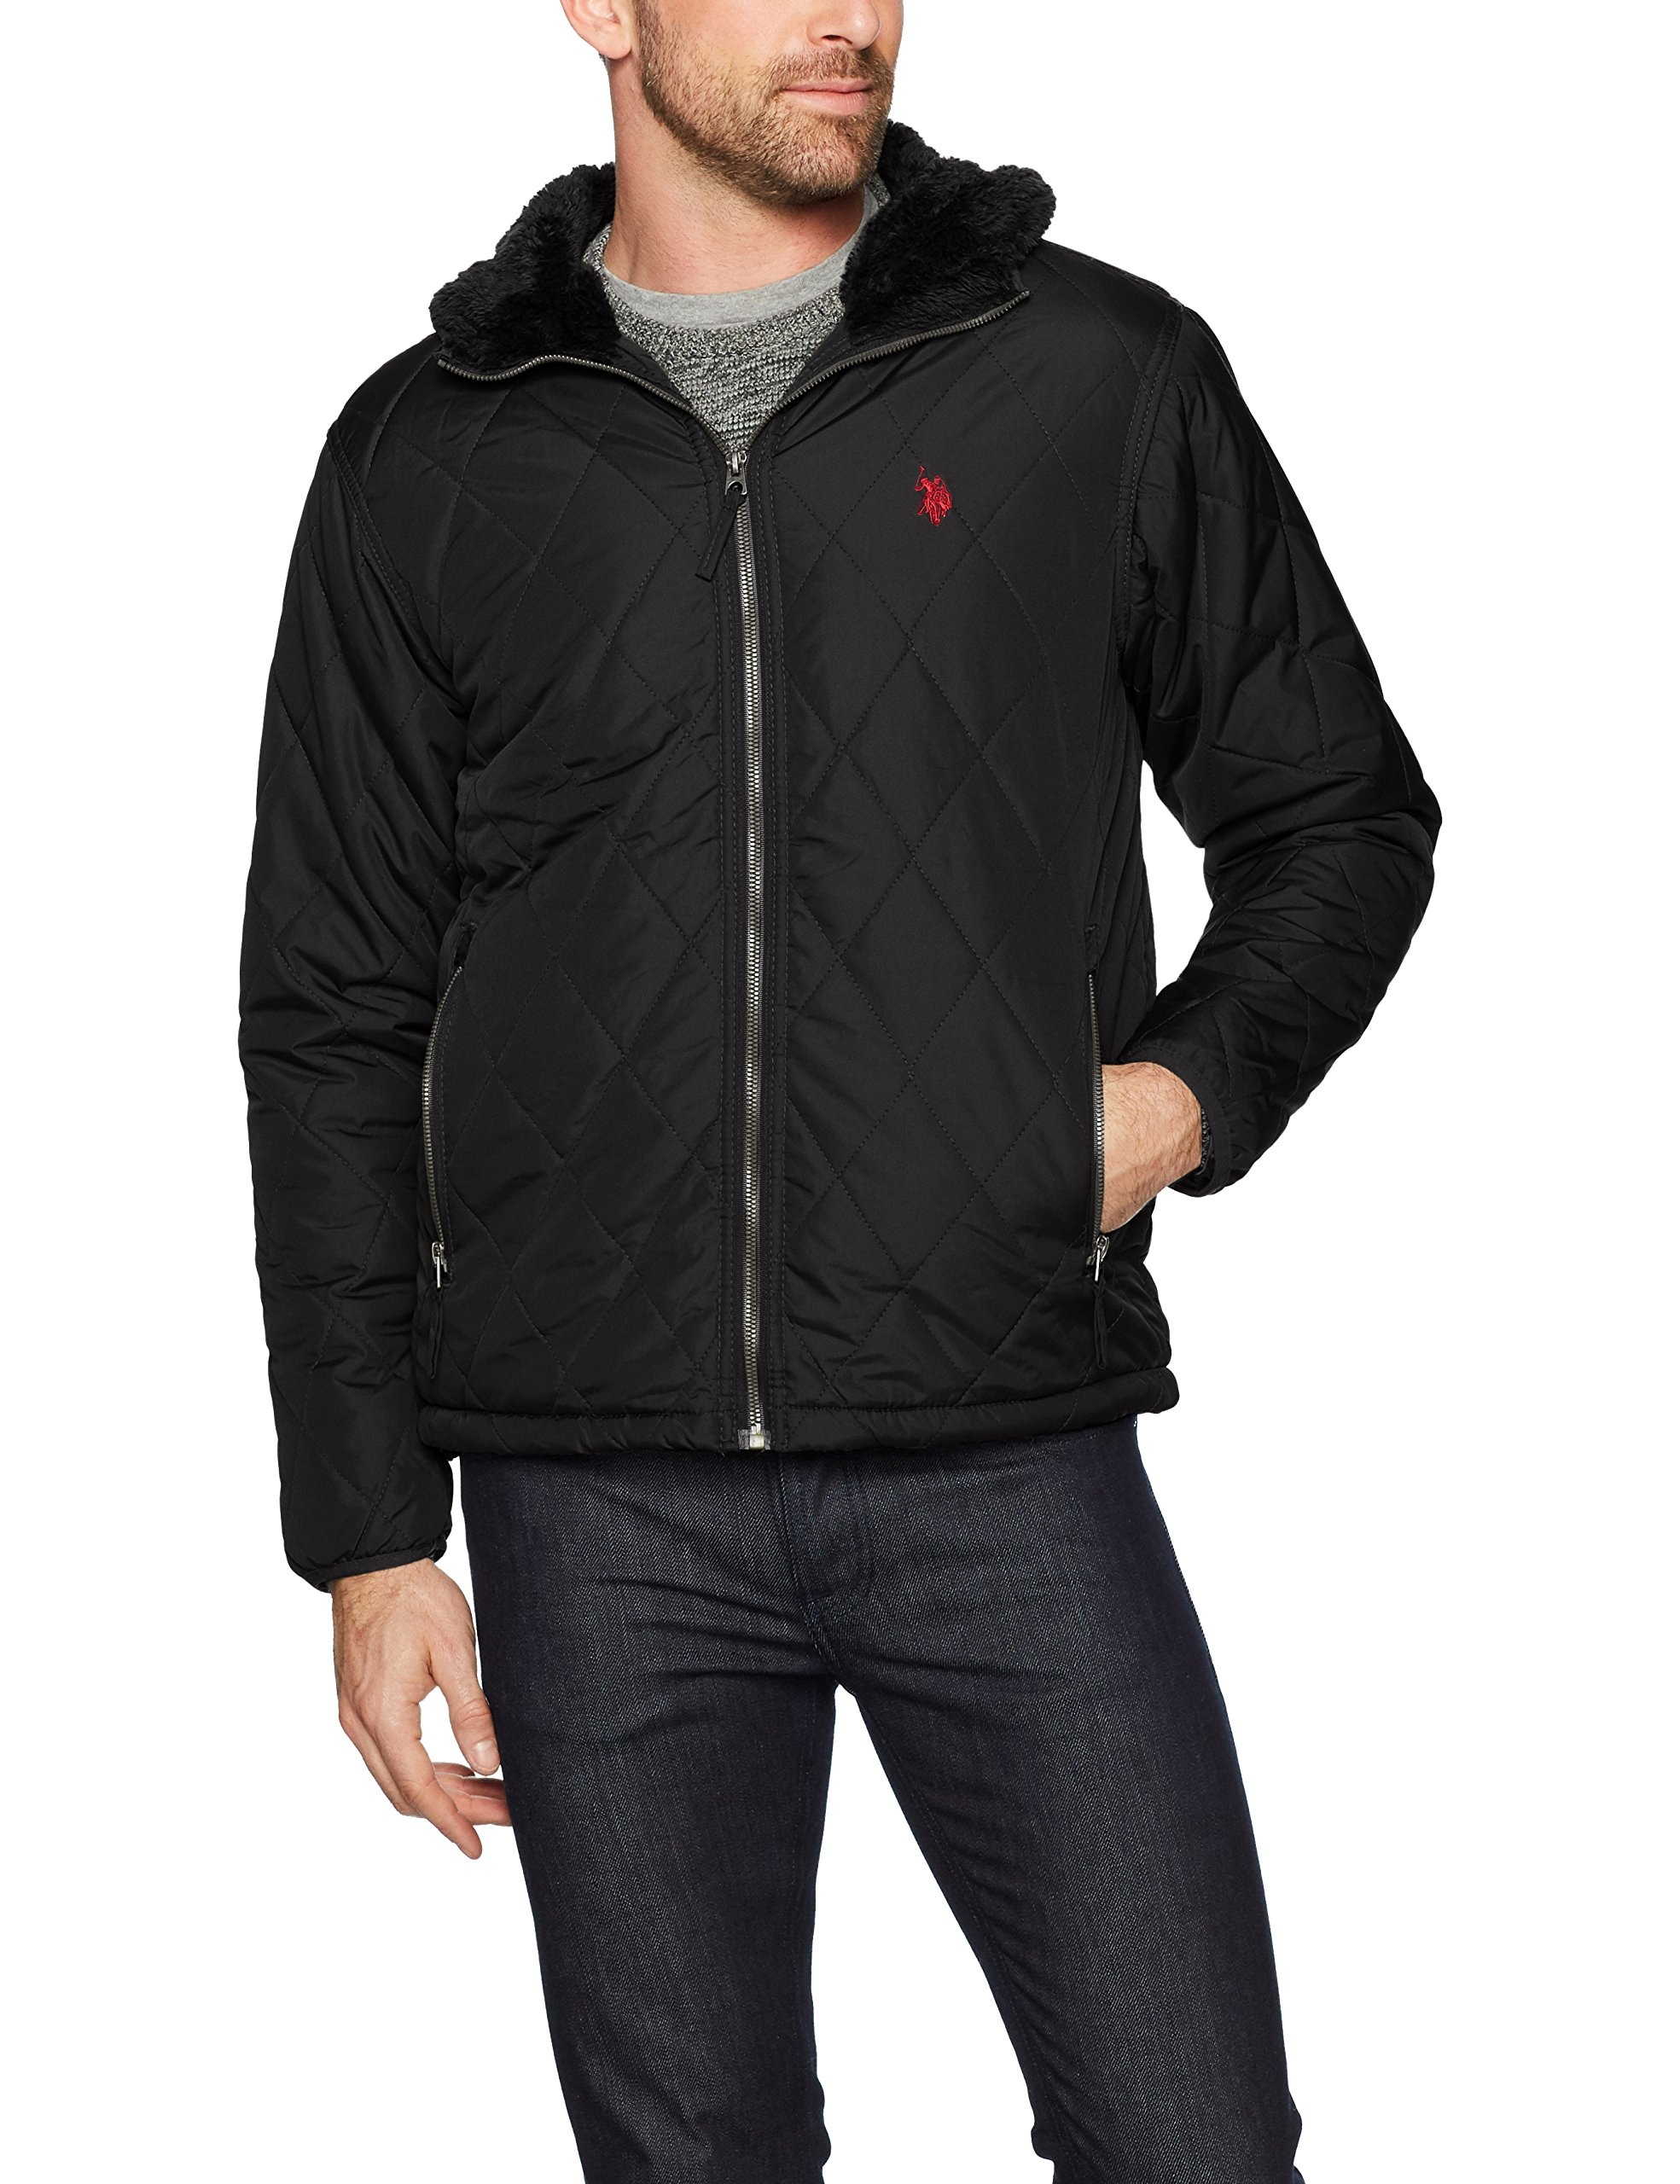 U.S. Polo Assn.. Mens Standard Quilted Jacket, Black 5970, M